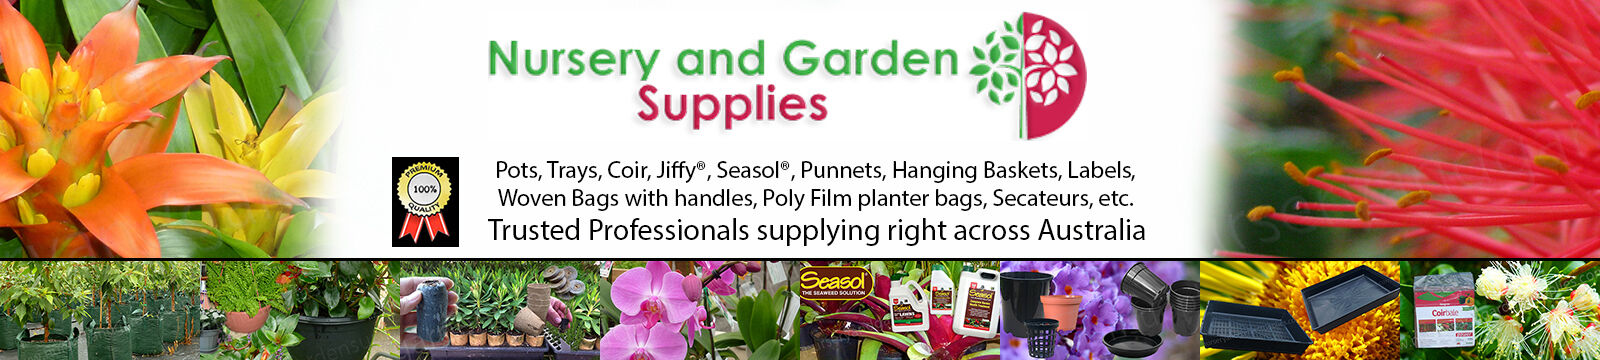 Nursery and Garden Supplies